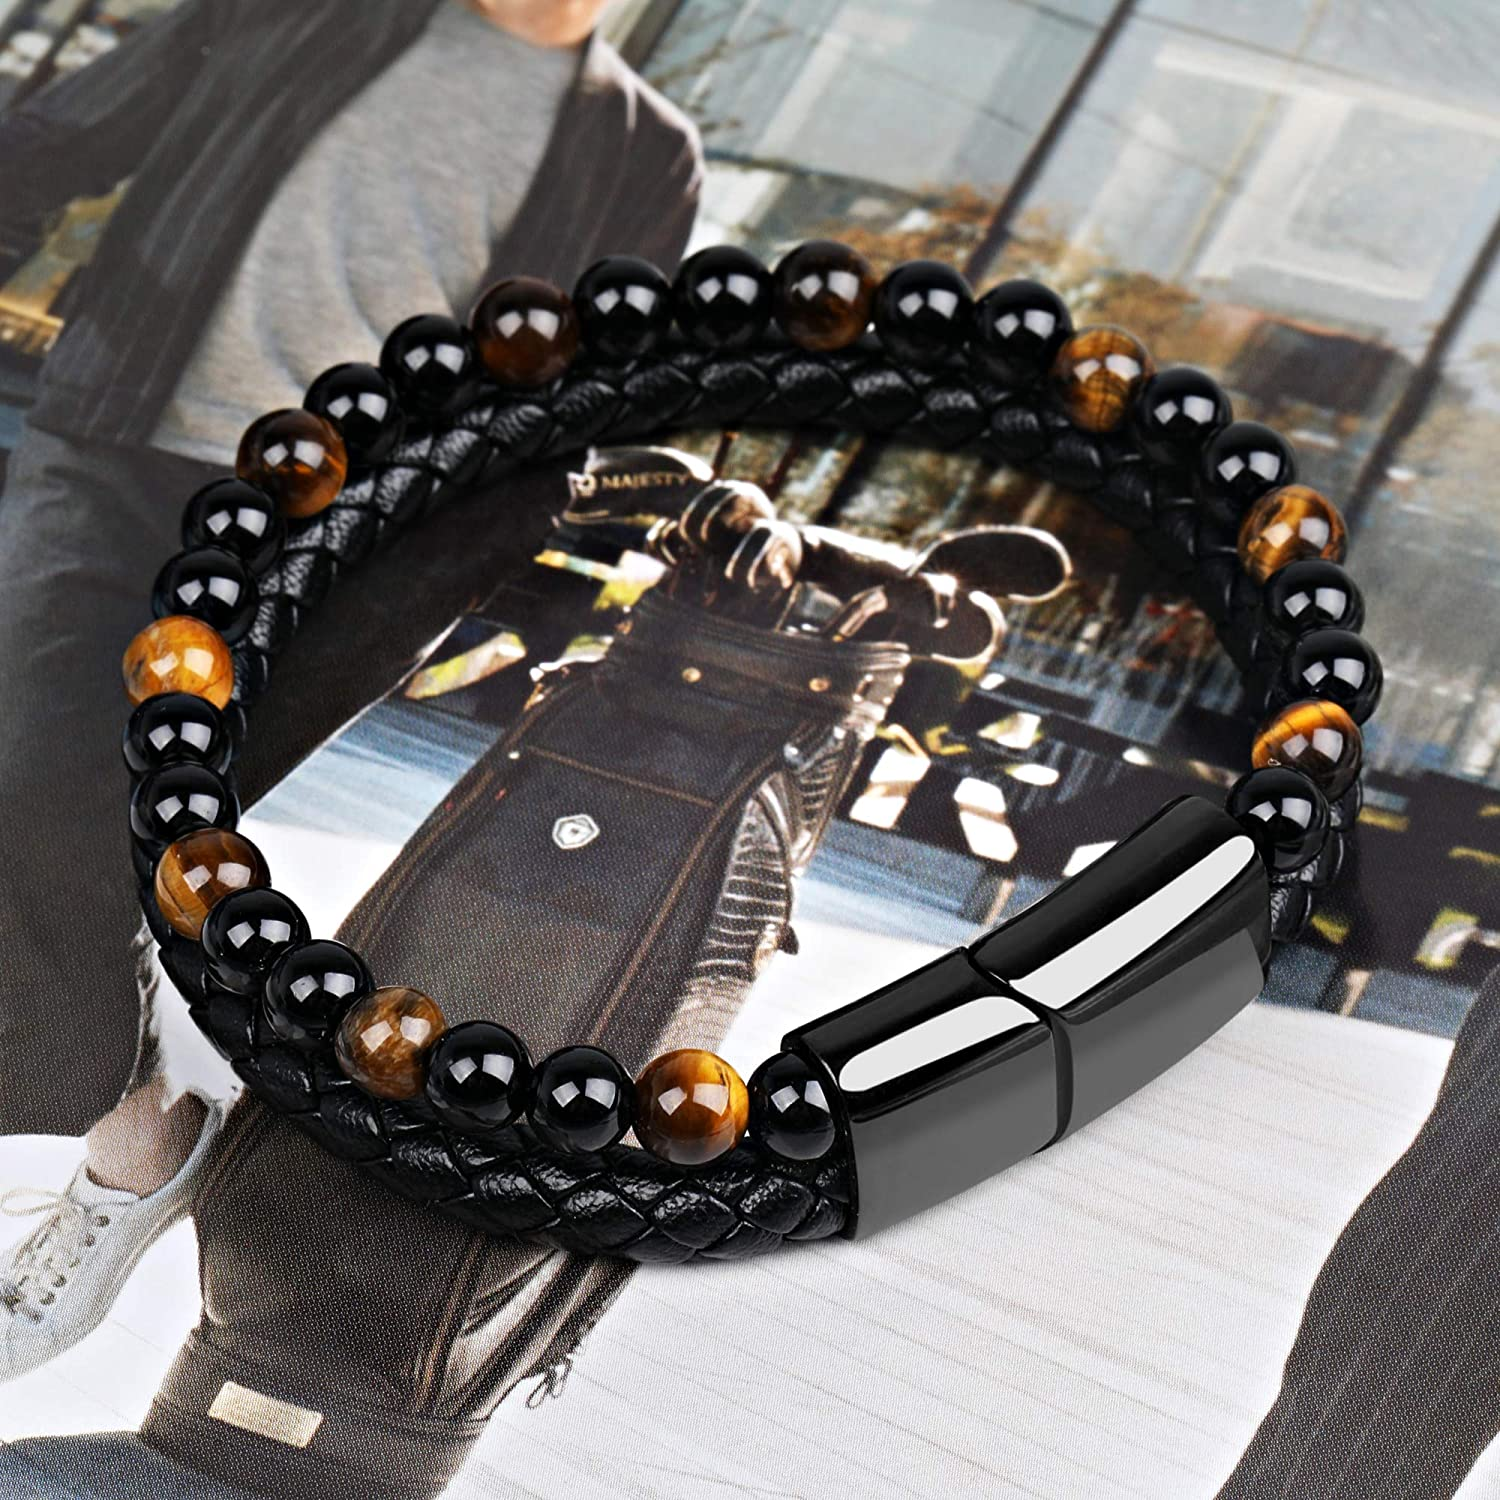 Mens Bracelet Anchor Black Leather Bracelet Natural Bead Bracelets with Stainless Steel Magnetic Clasp Handmade Braided Cuff Leather Bracelets for Men